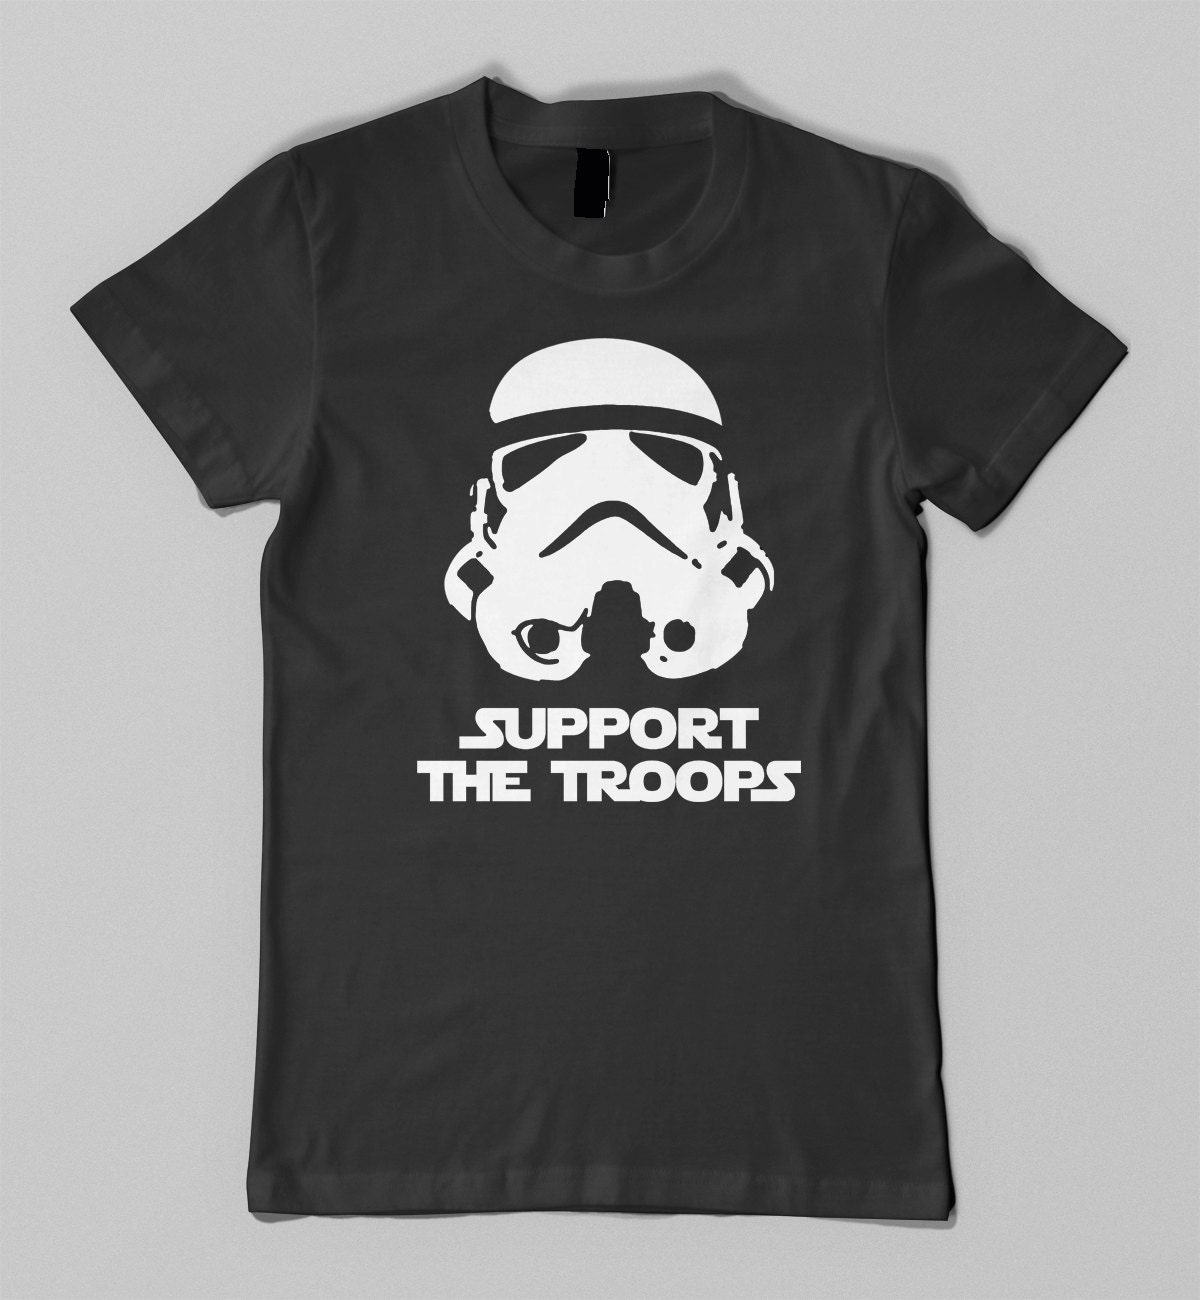 Support The Troops Star Wars T-Shirt